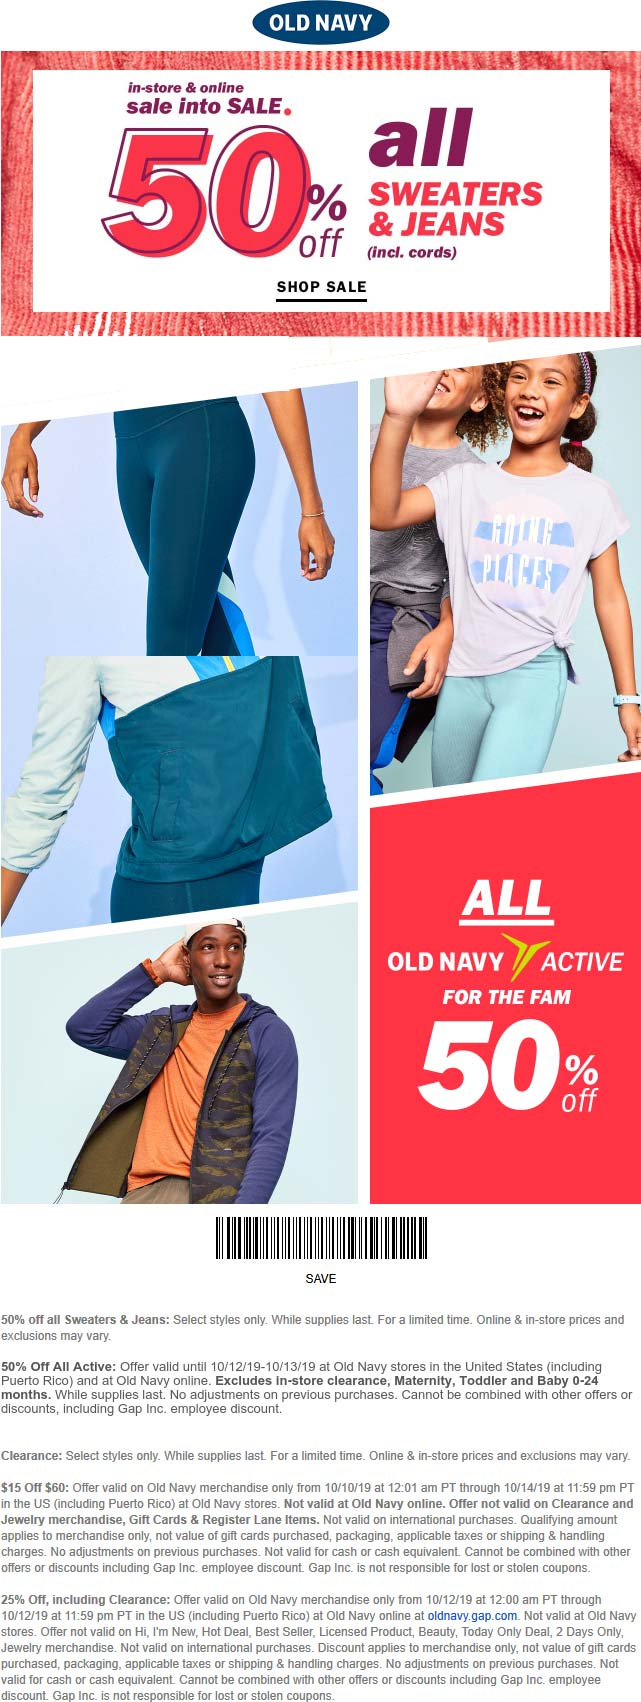 Old Navy Coupon October 2019 50% off sweaters activewear & jeans at Old Navy, ditto online